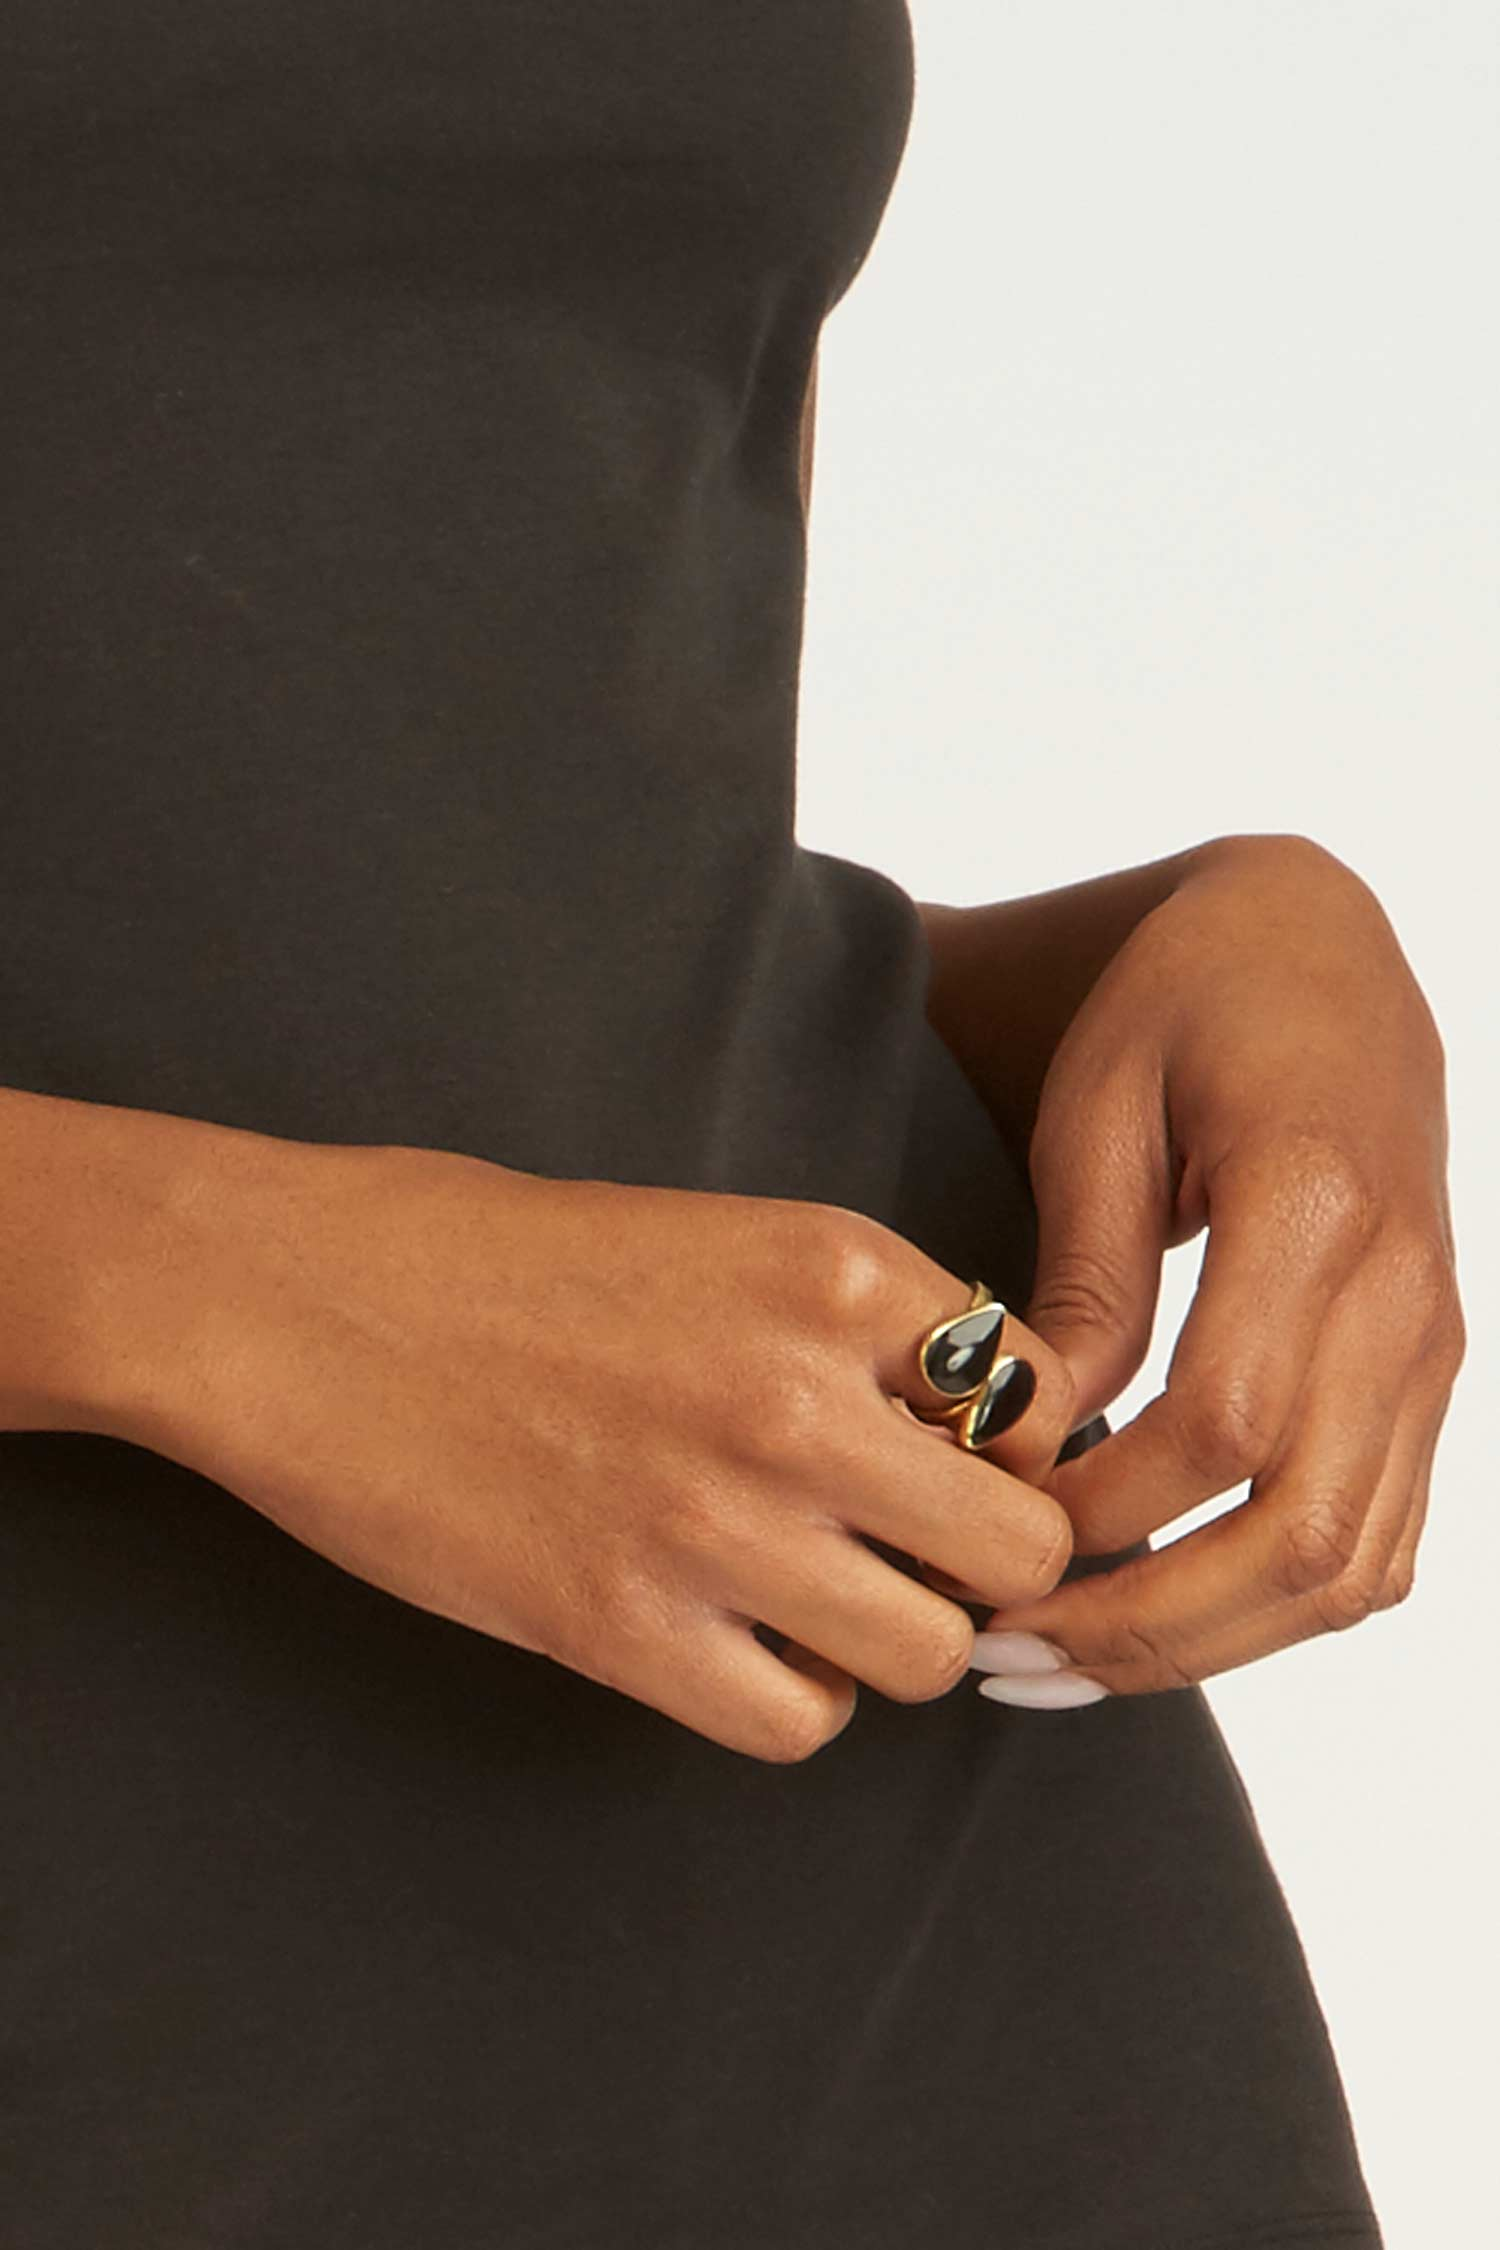 Ethically Made Jewelry: Indra Horn Statement Ring by SOKO